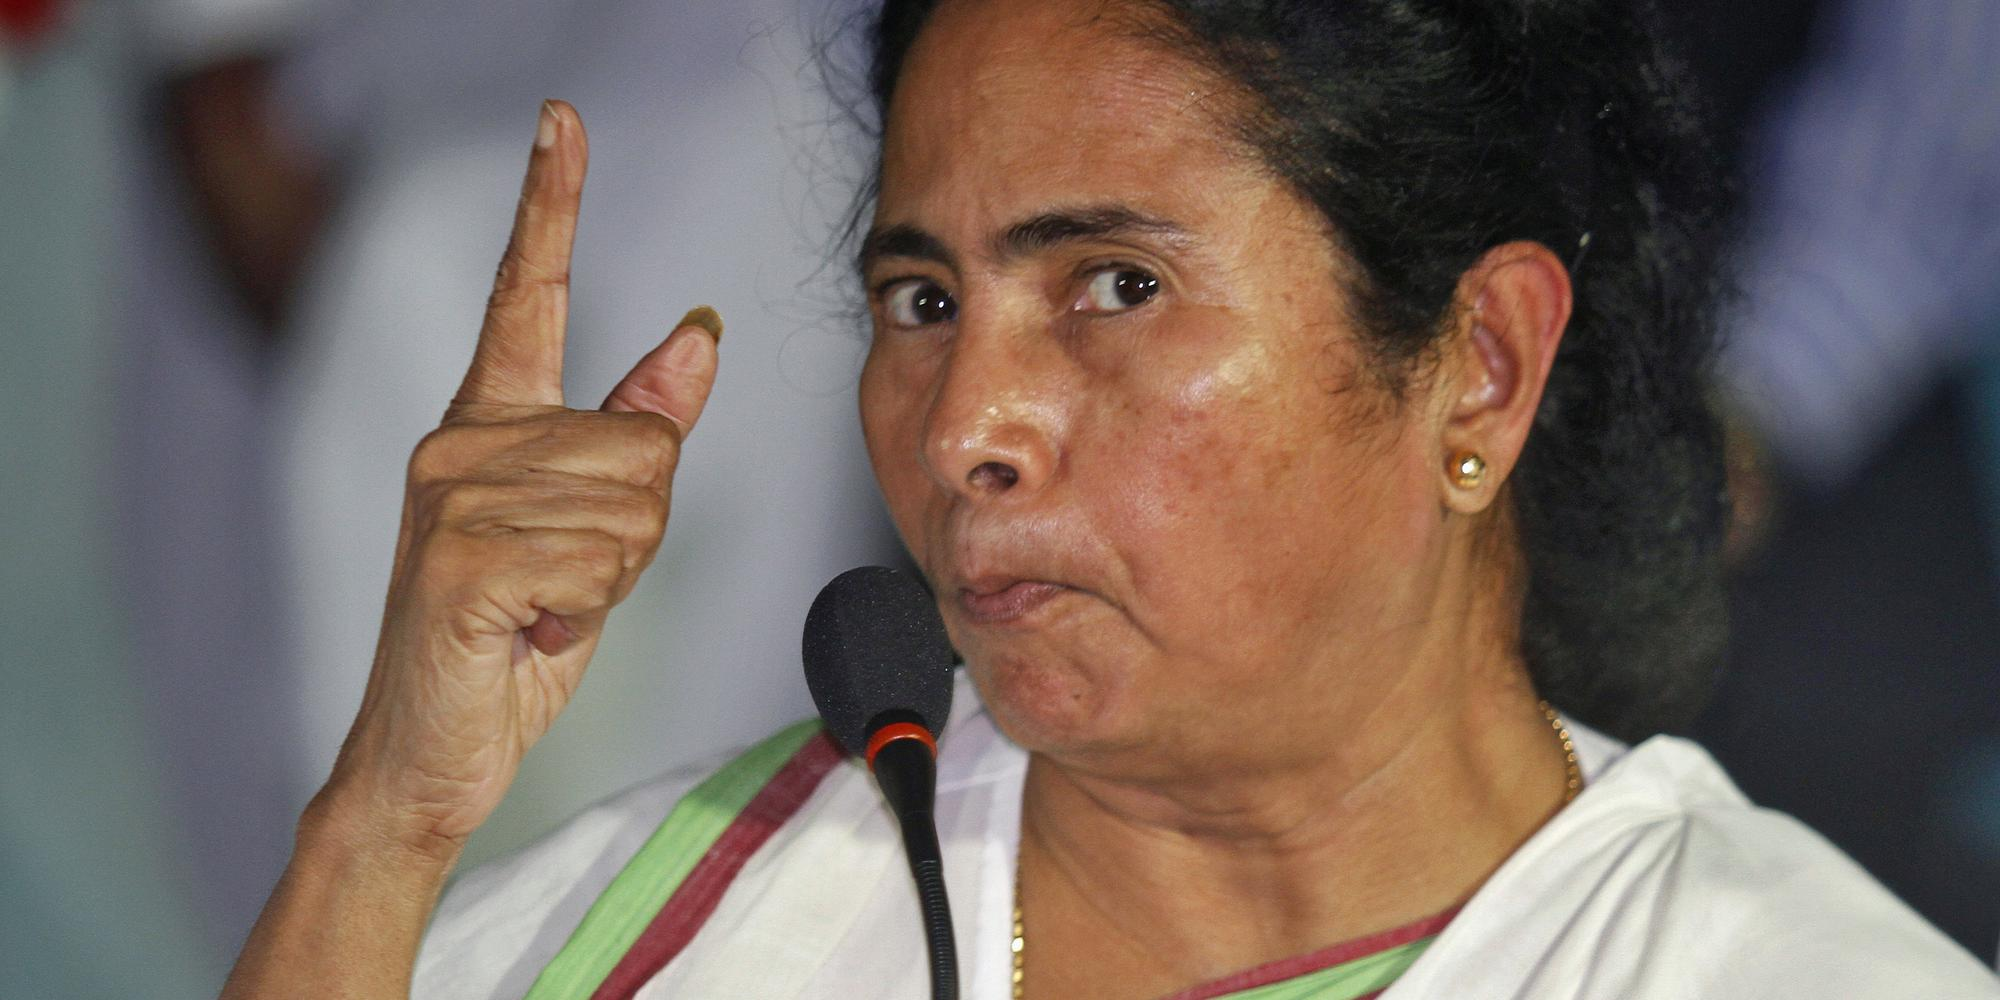 Mamata vs Doctors: Mamata Banerjee won't back down, reiterates that protesting doctors are outsiders - Opindia News